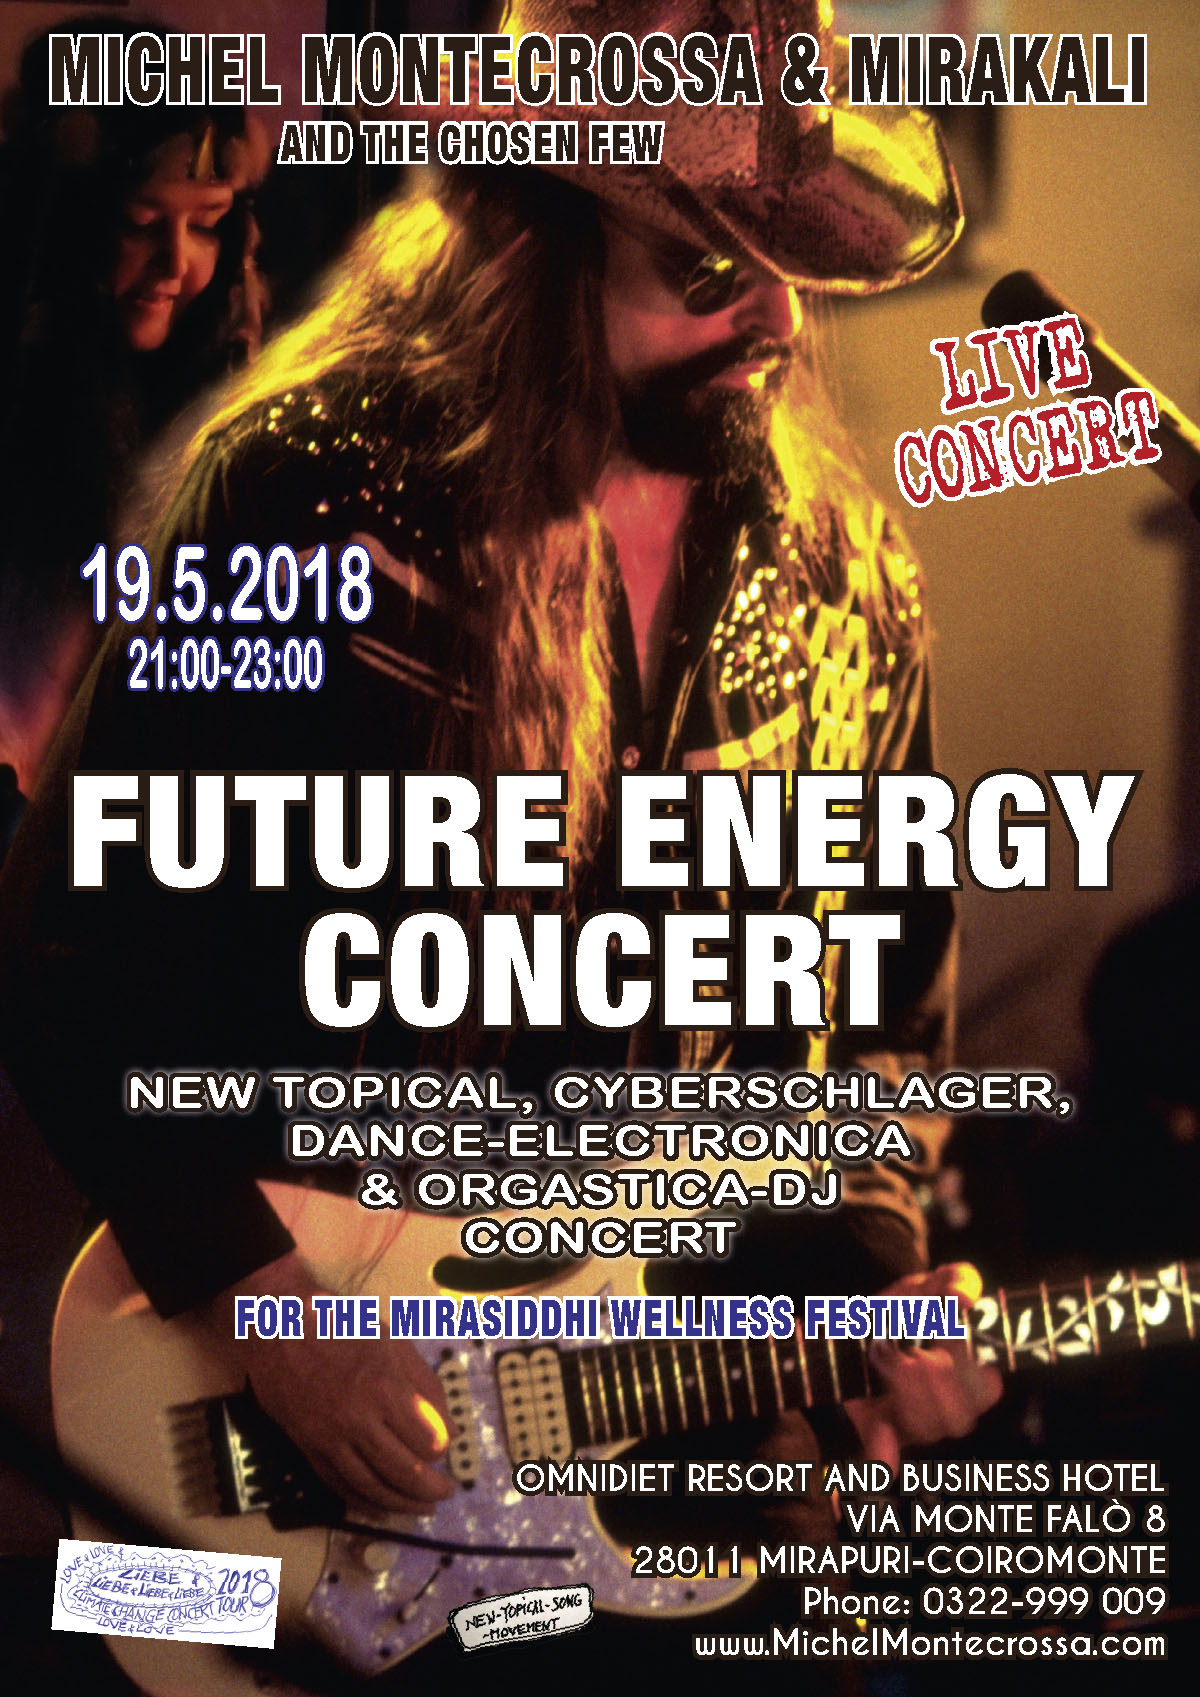 'FUTURE ENERGY' Concert with Michel Montecrossa & Mirakali and The Chosen Few